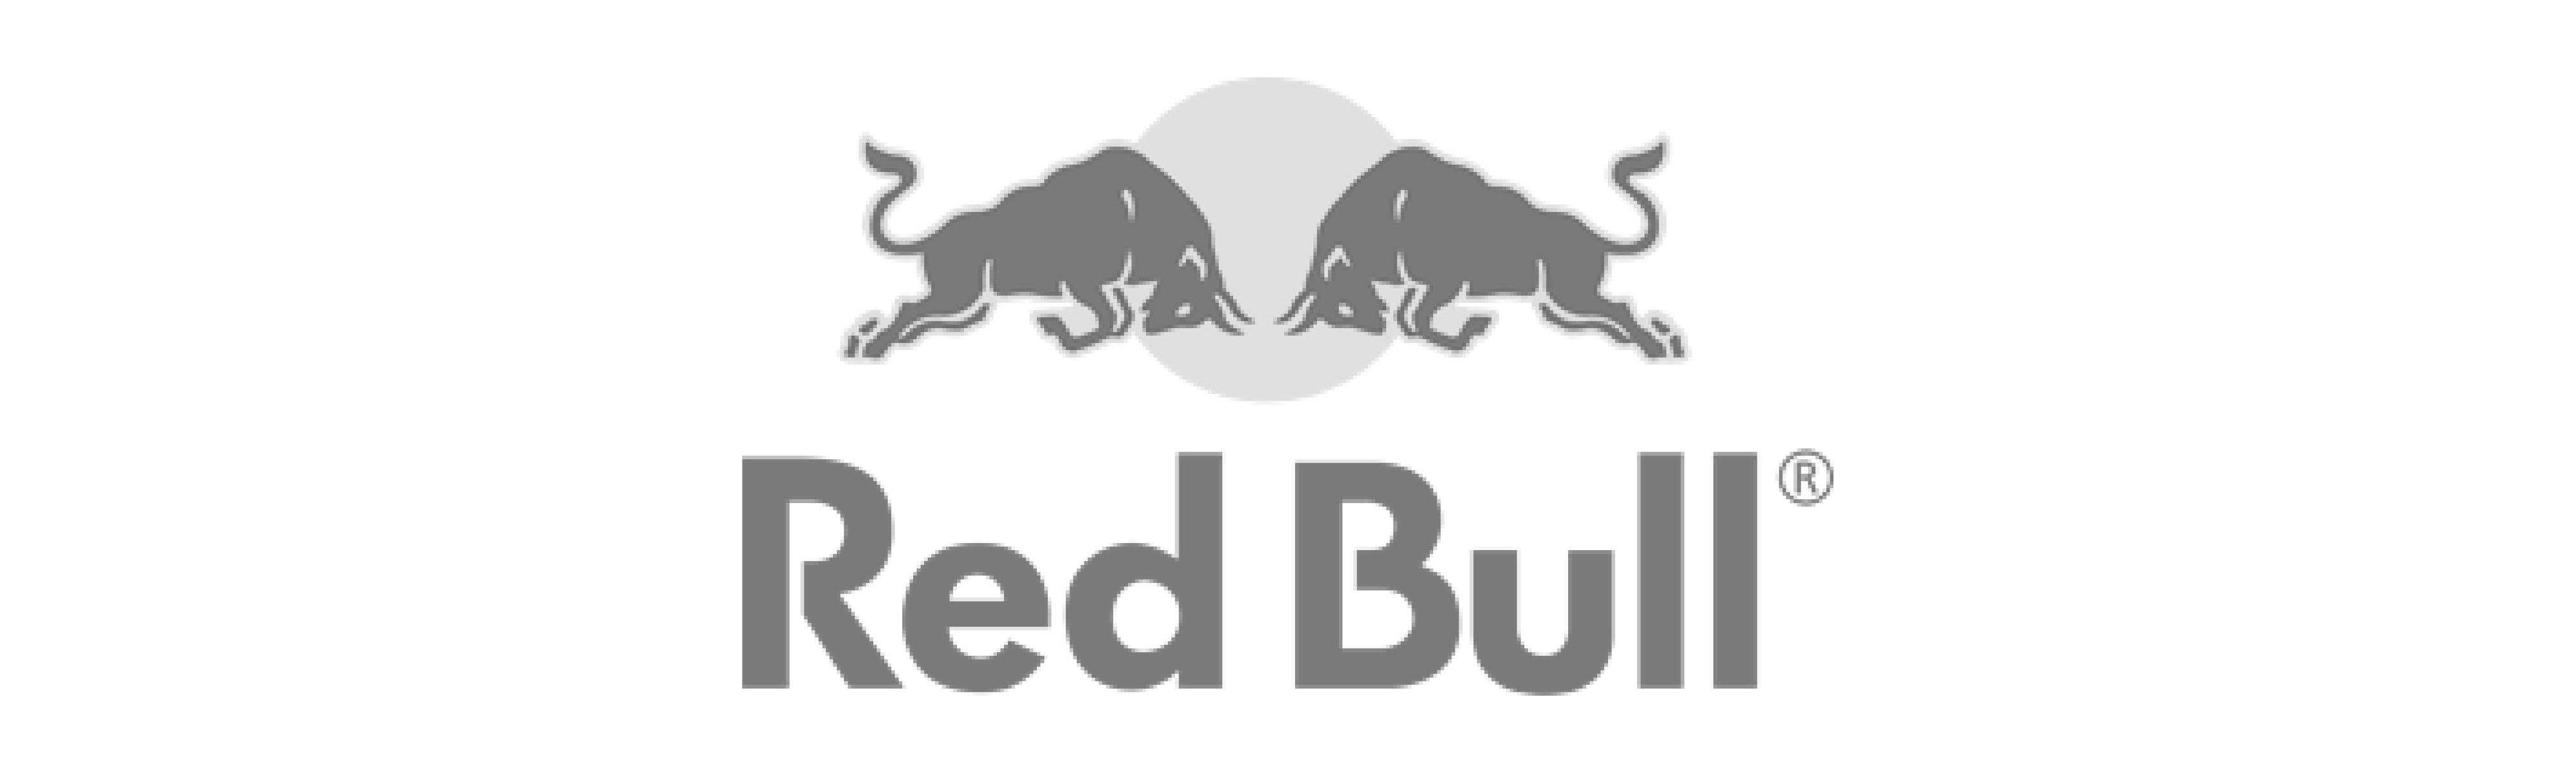 Redbull grouu.io agency work